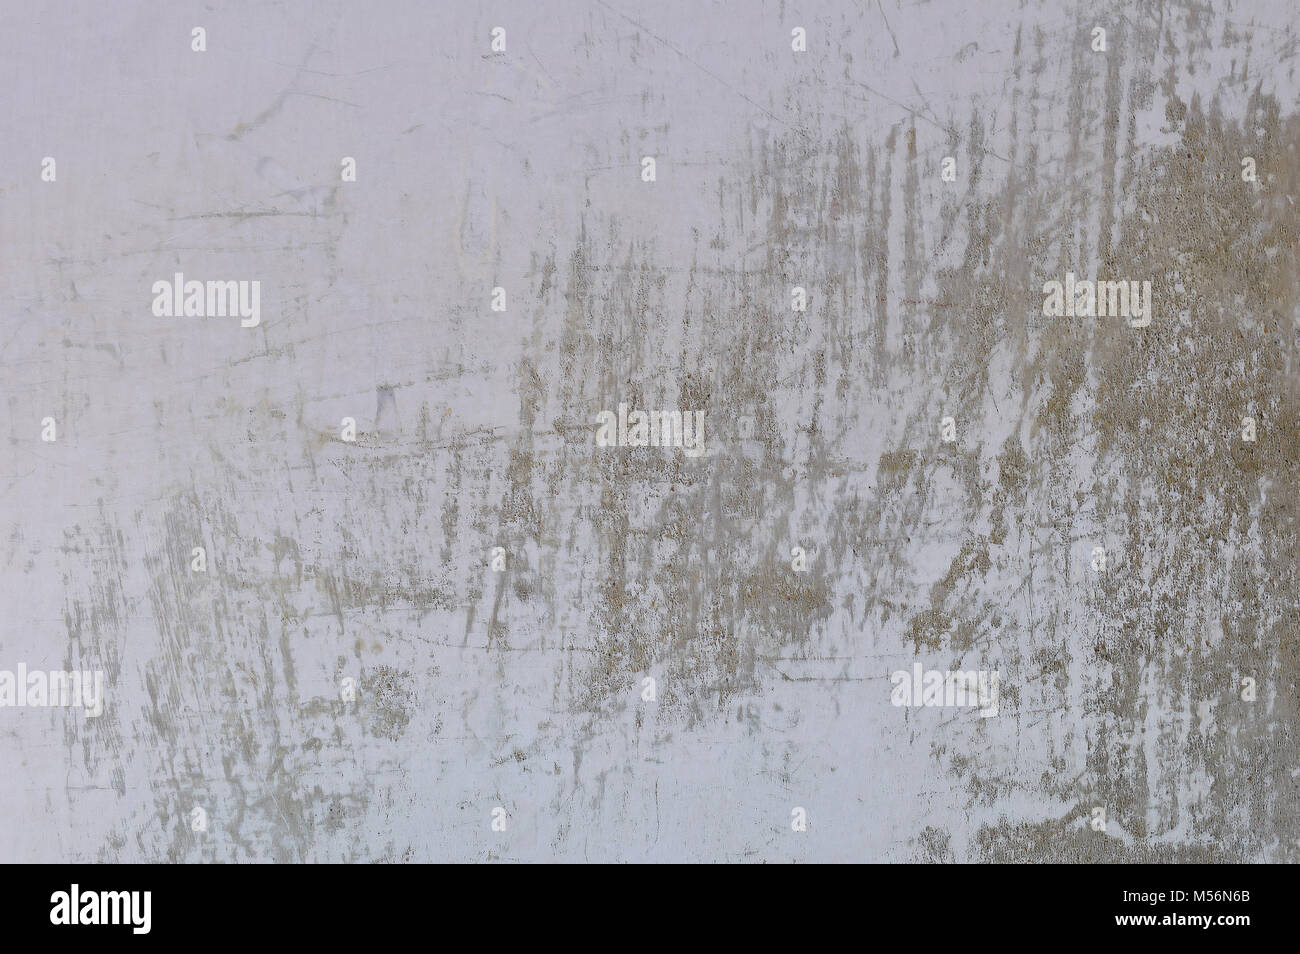 Scratched whitewash wall. - Stock Image